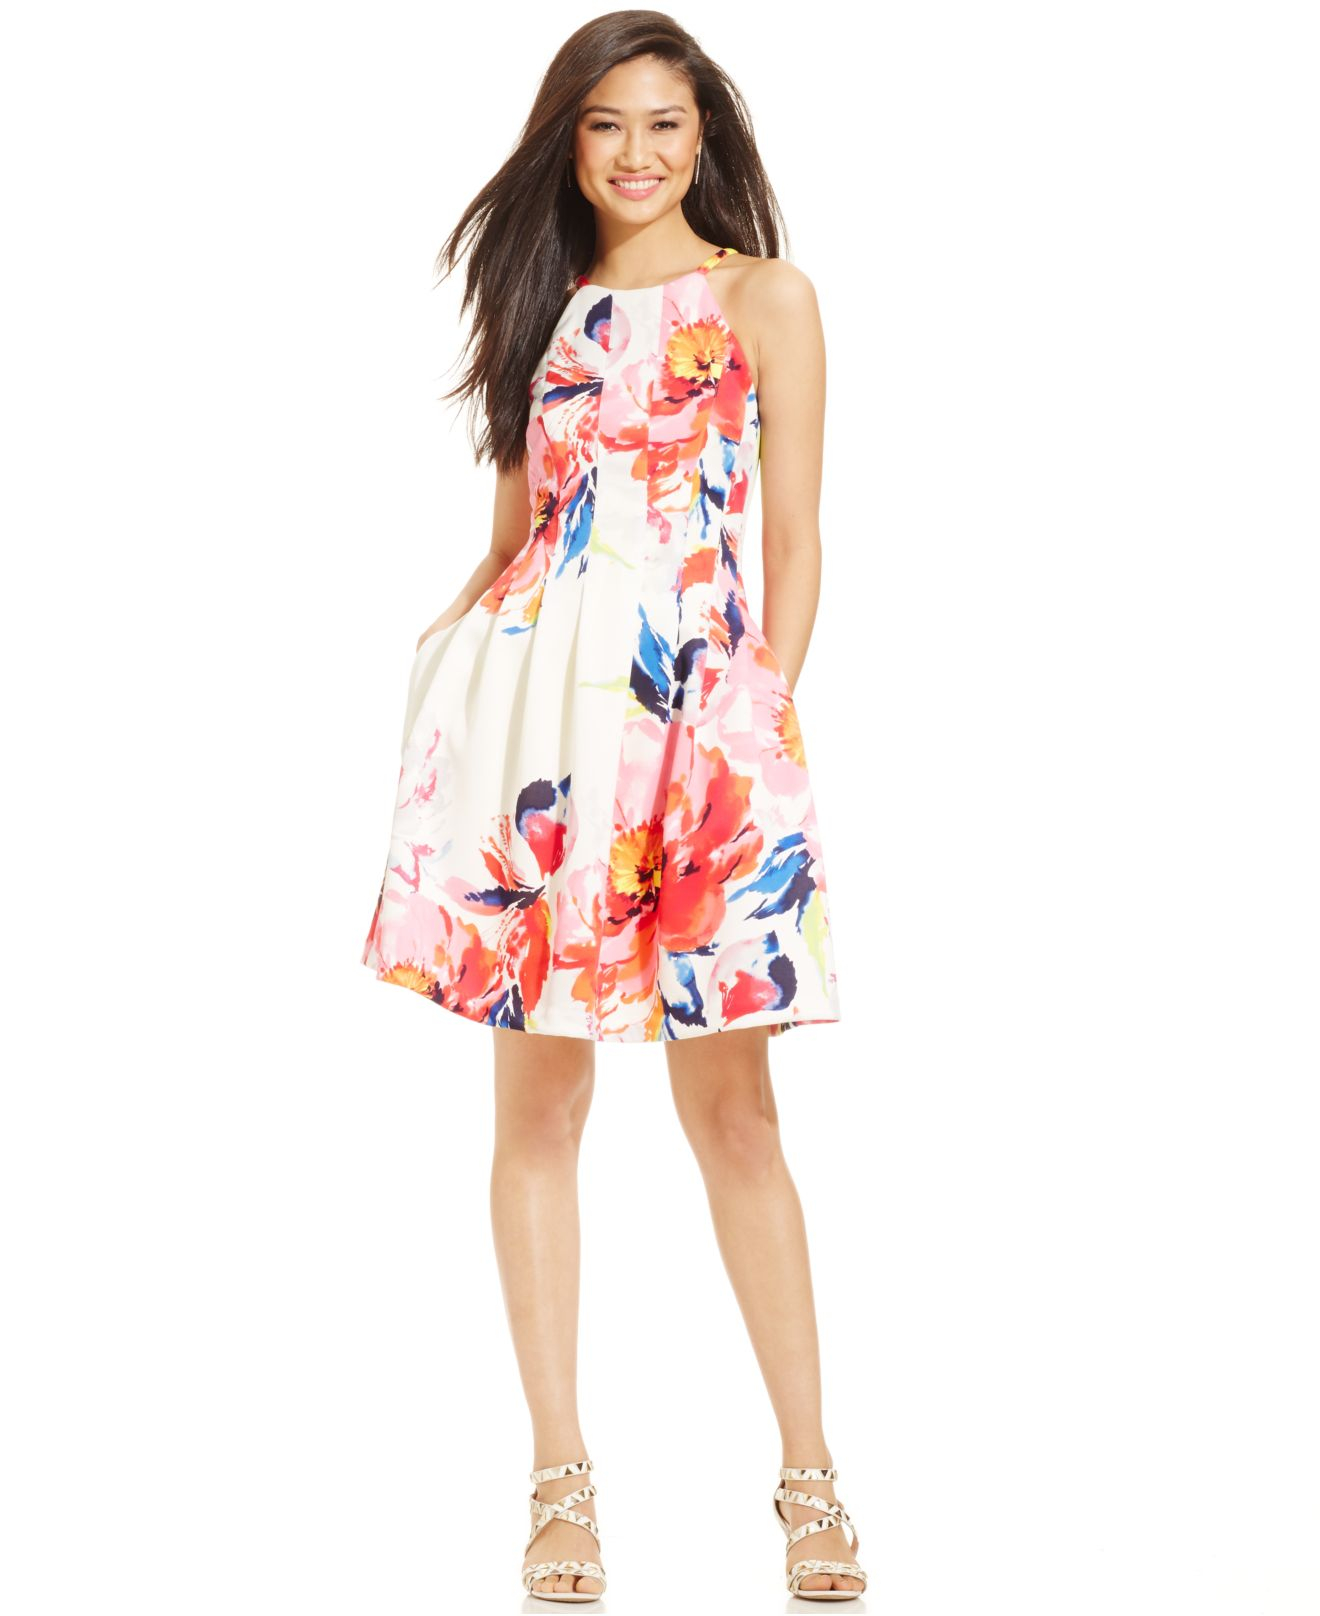 6c9959c9c99b Lyst - Vince Camuto Floral-print Seamed Scuba Dress in Pink